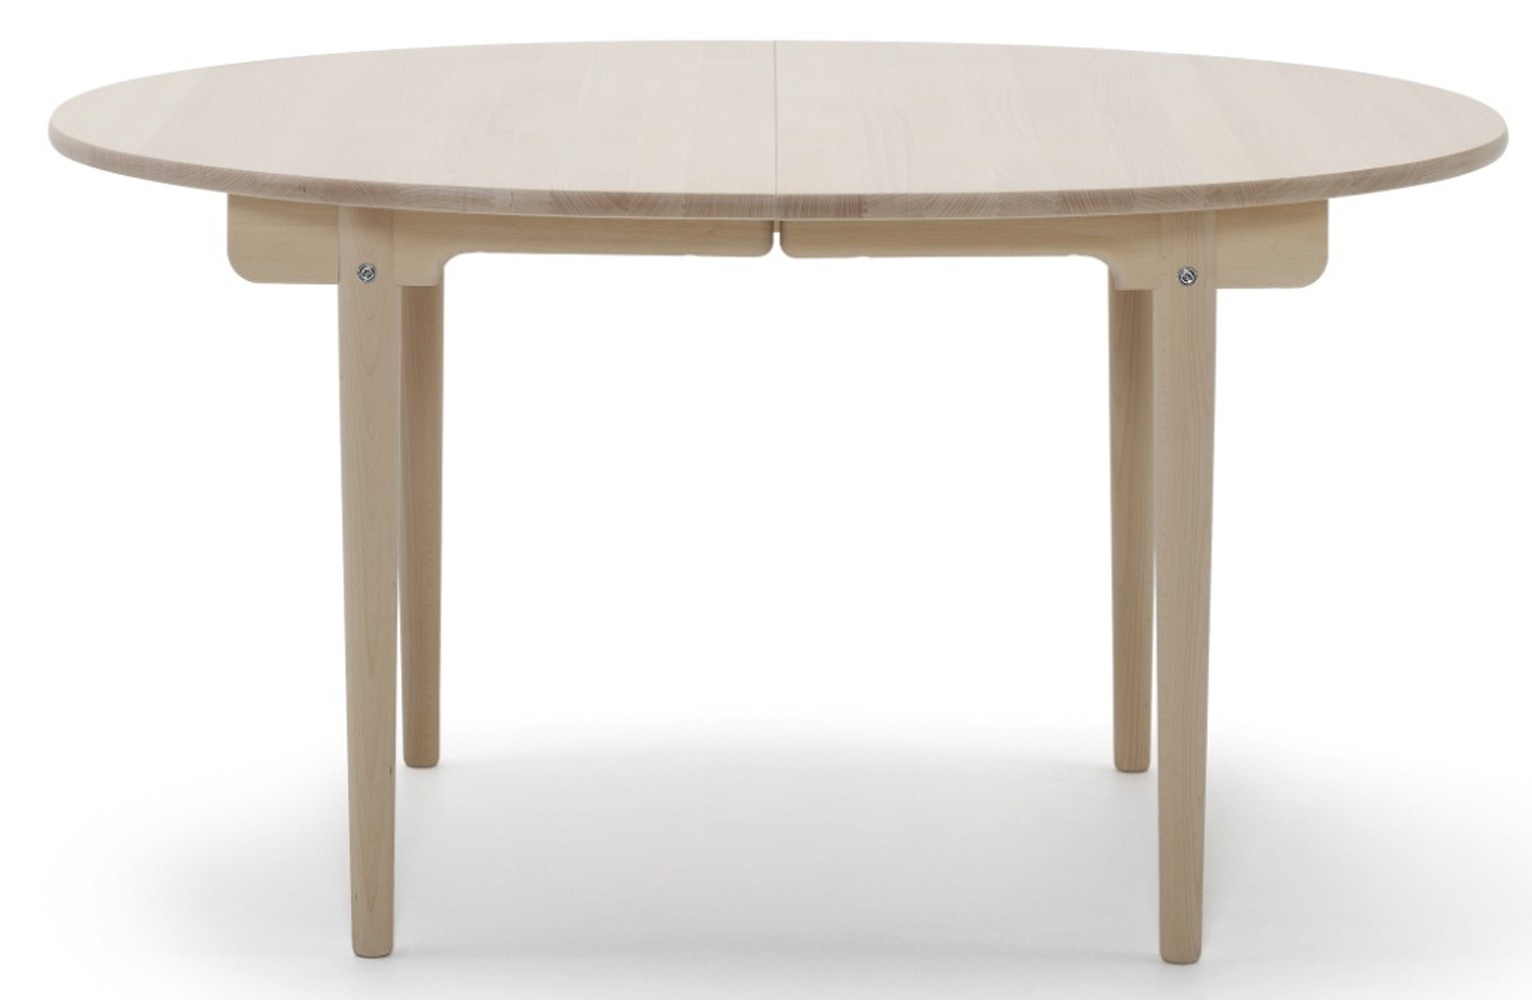 Carl Hansen & Son CH337 Dining Table in Oak (Expandable with 1 or 2 Leaves) (Promo)